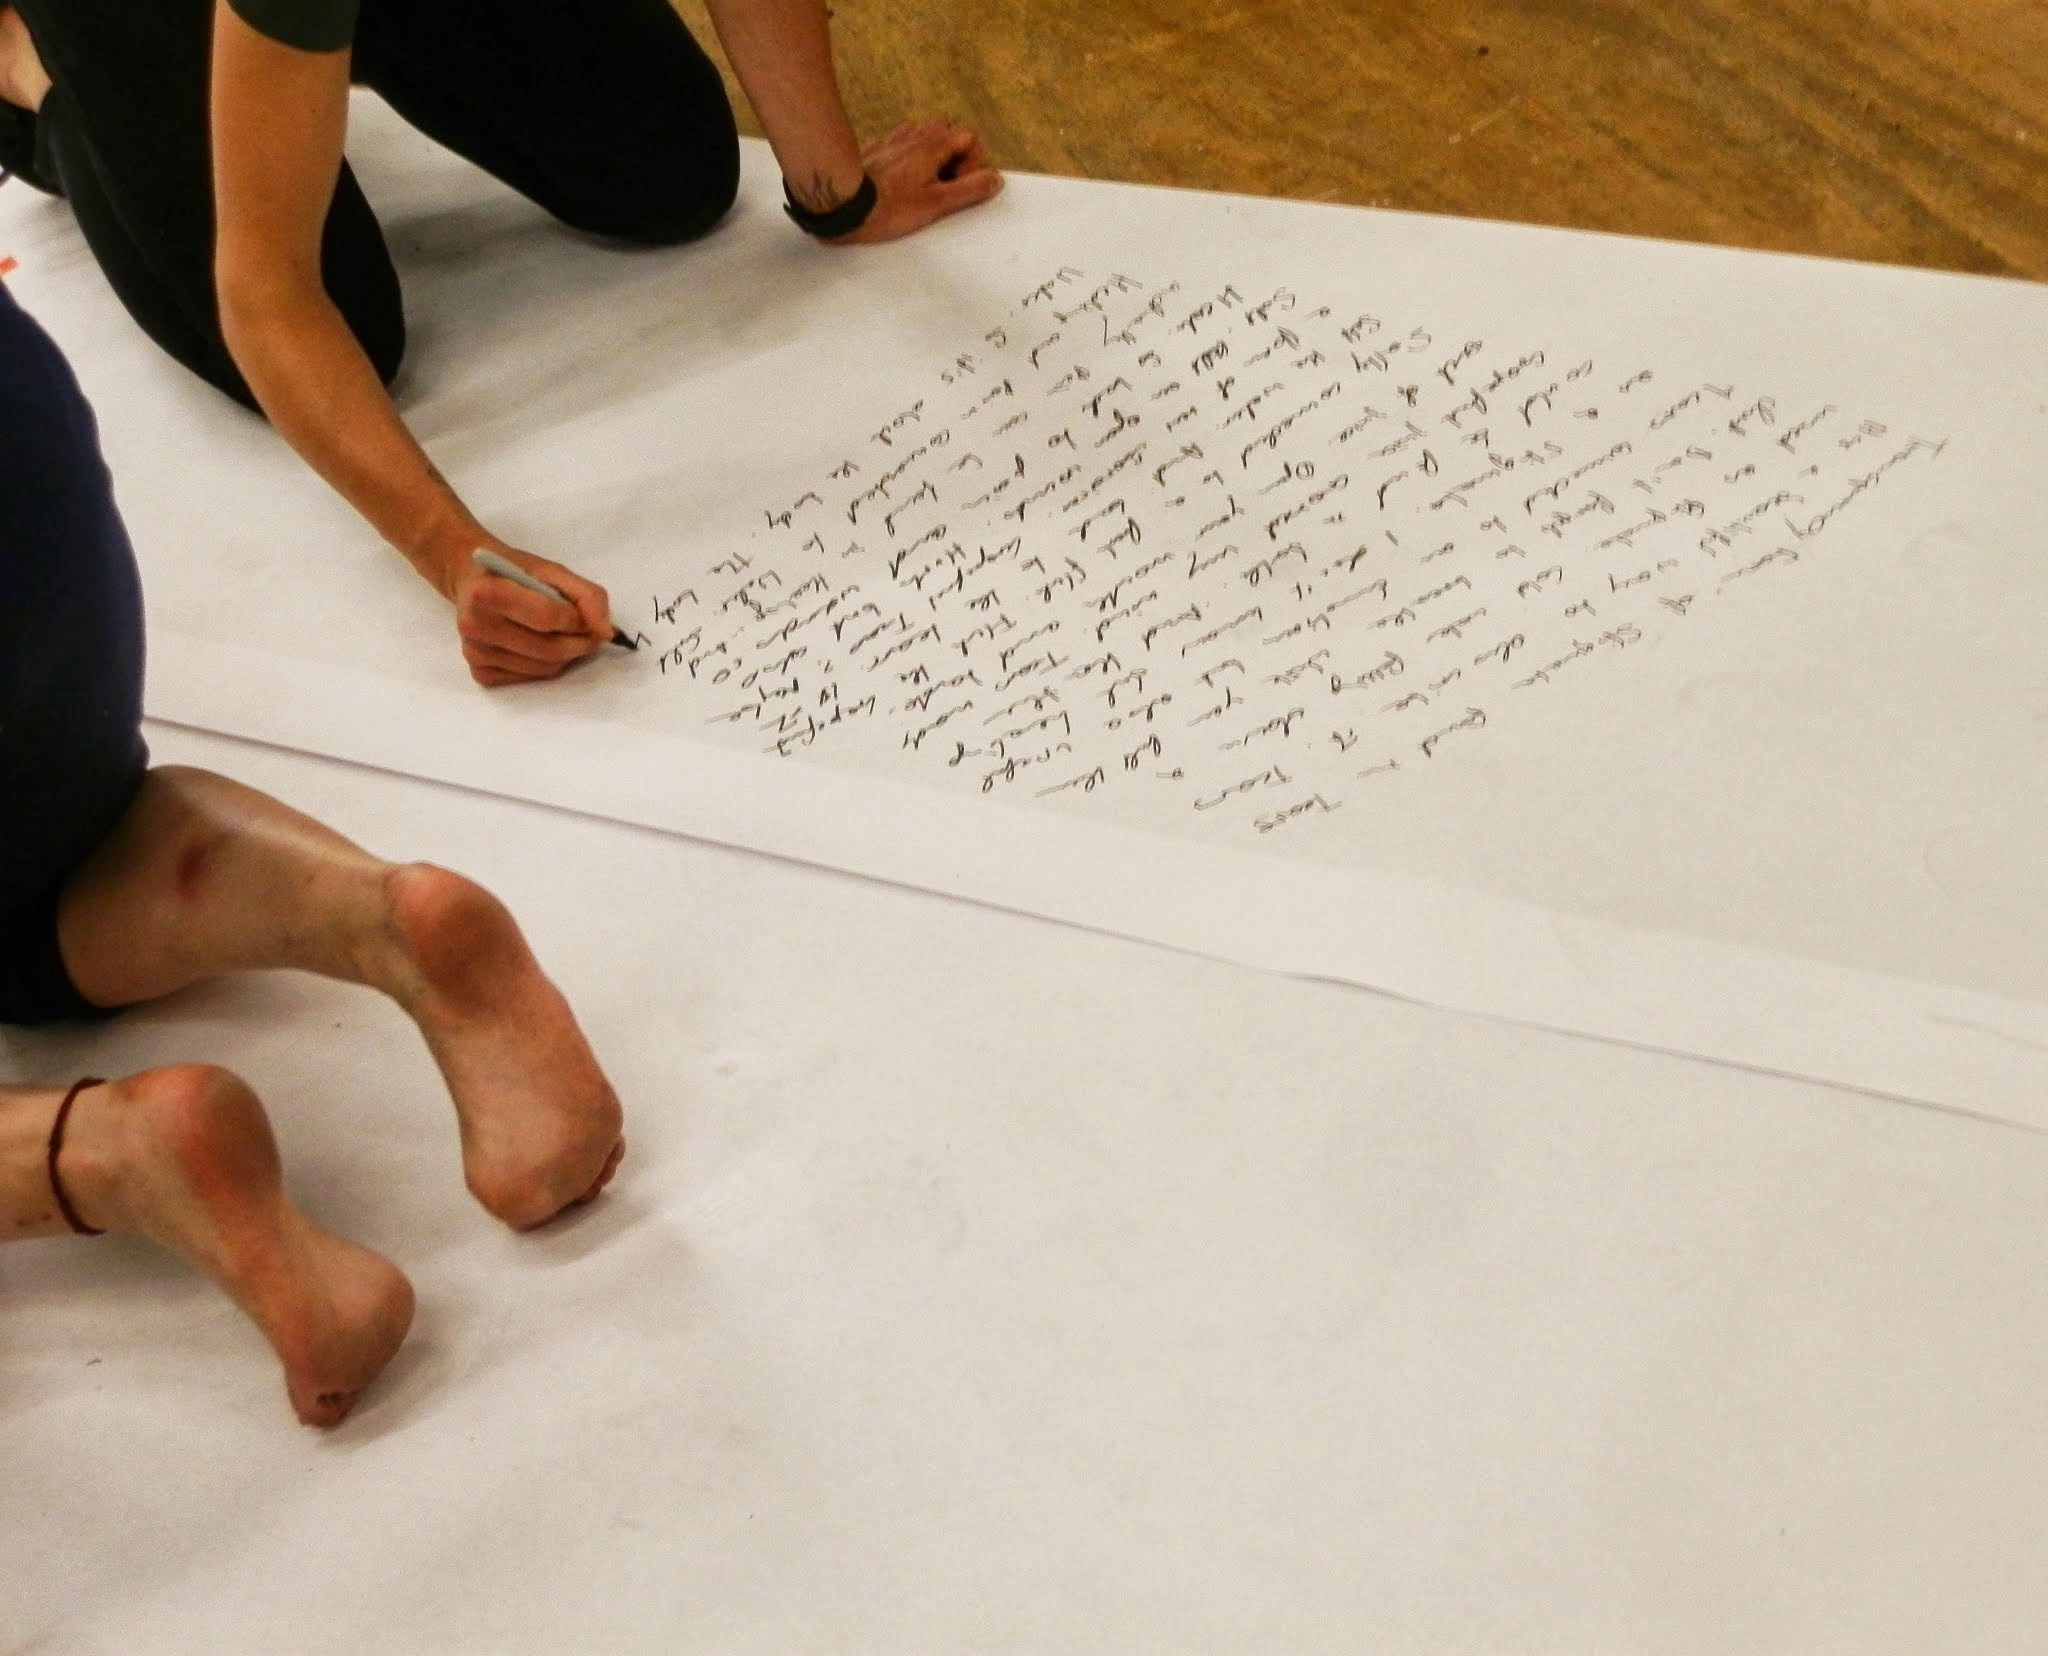 Automatic writing in process. (Photo: Emily Colucci)